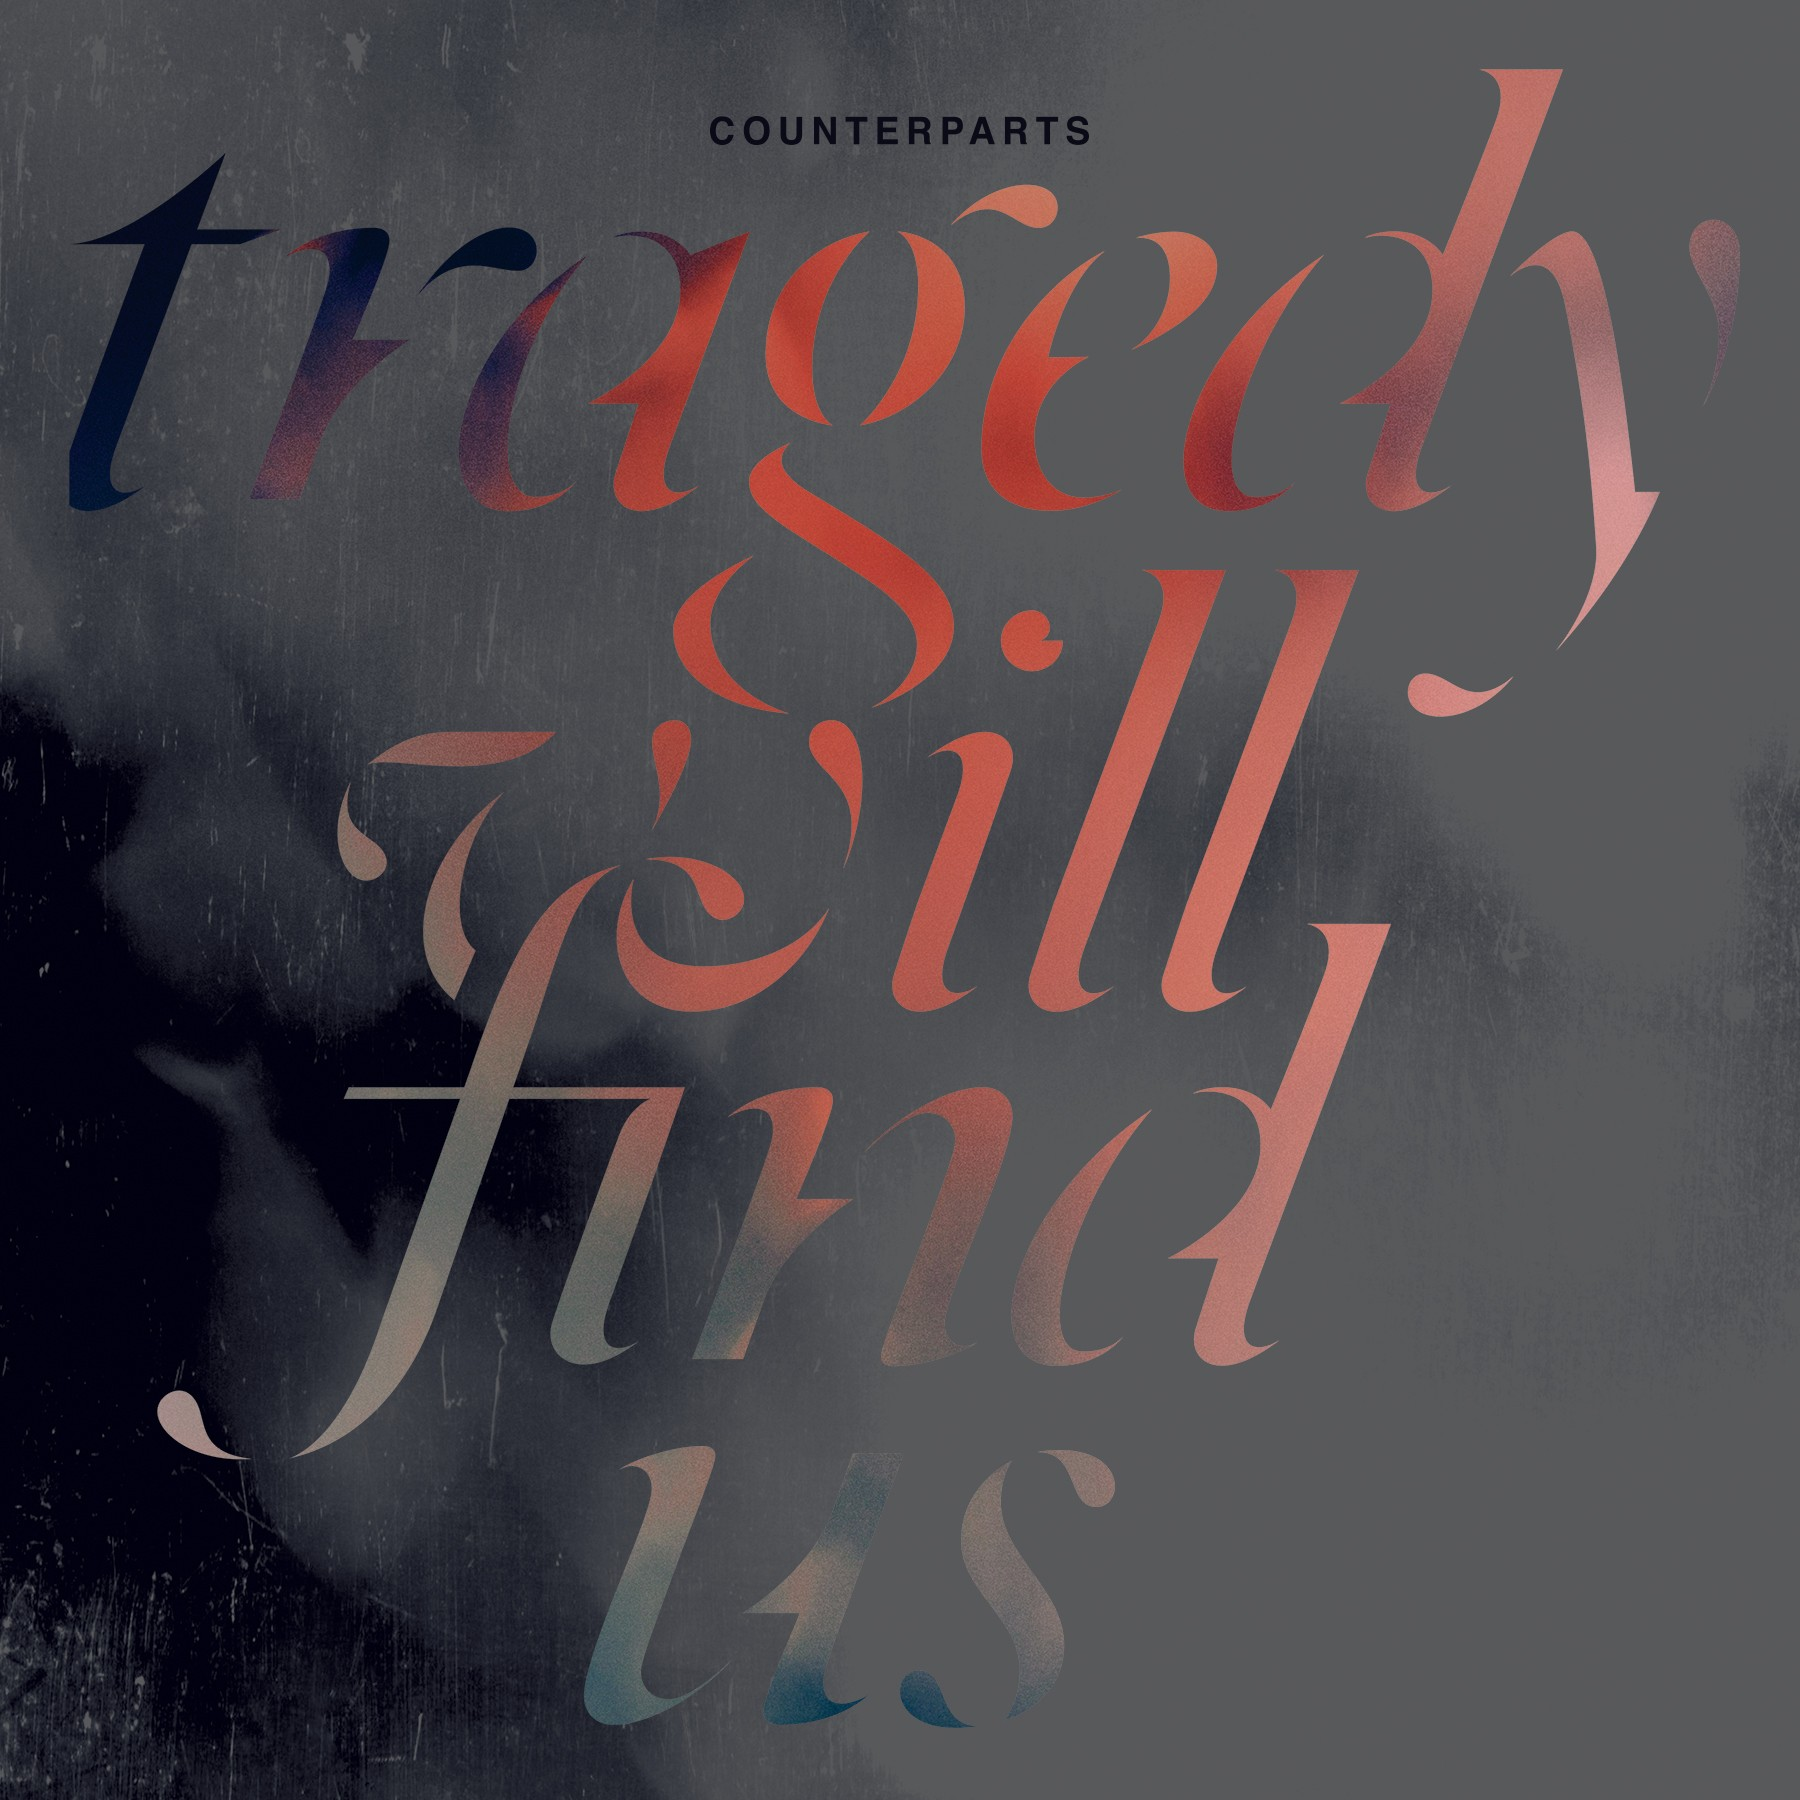 Counterparts - Tragedy Will Find Us LP